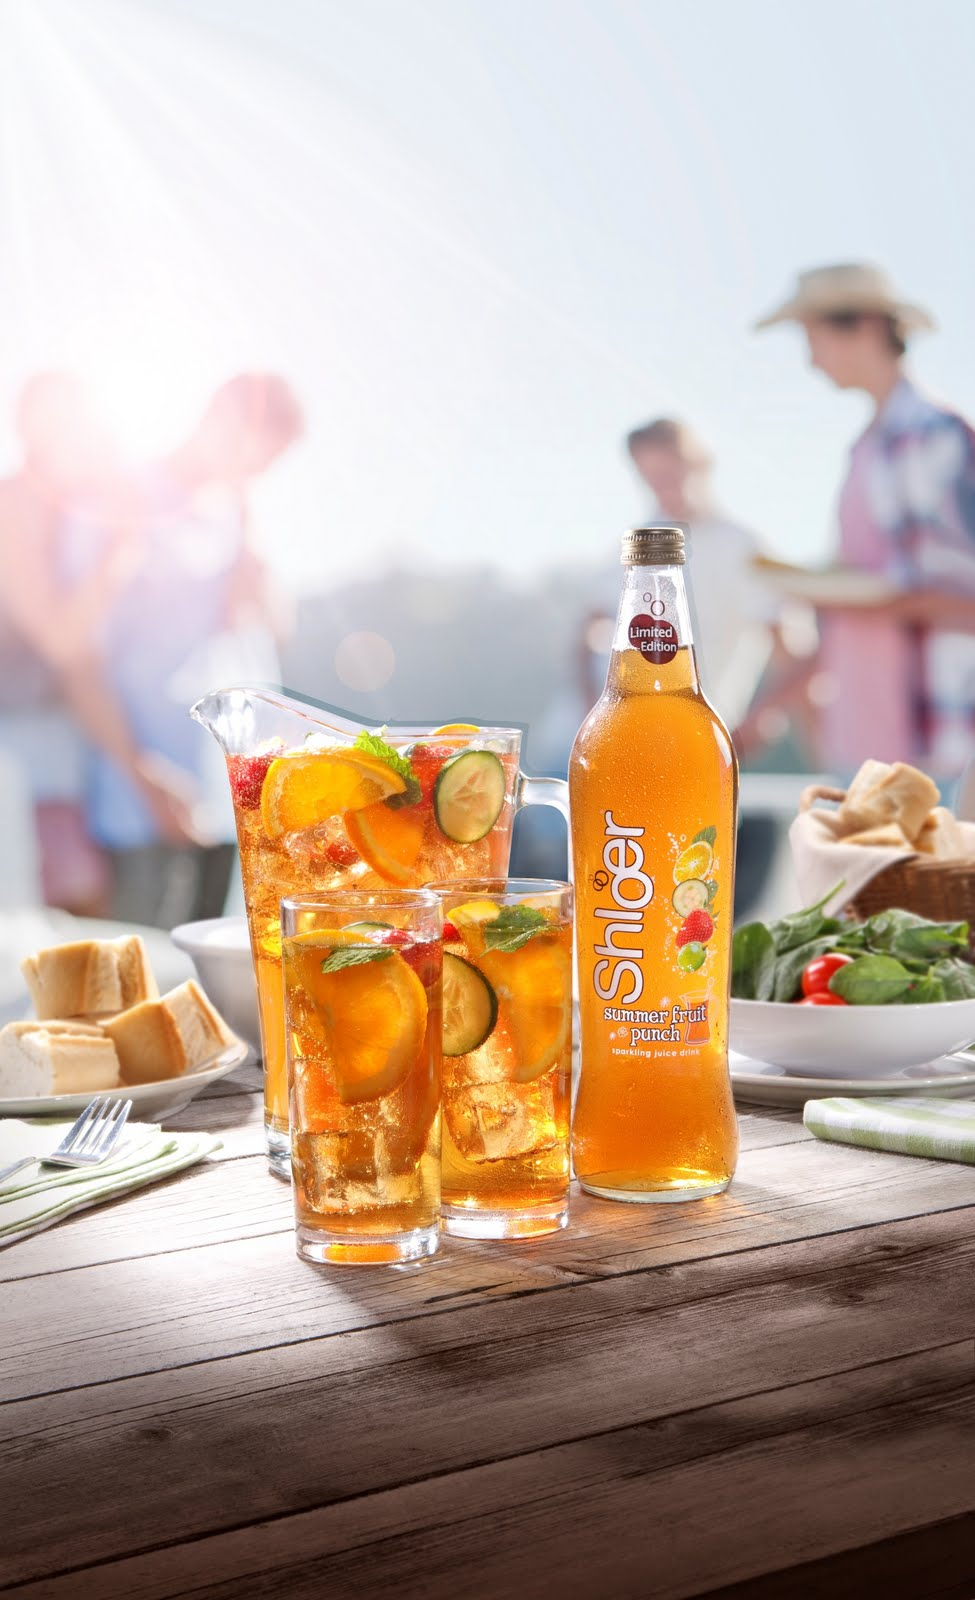 ... Summer Fruit) punch - win tickets to a Tatton Park picnic concert